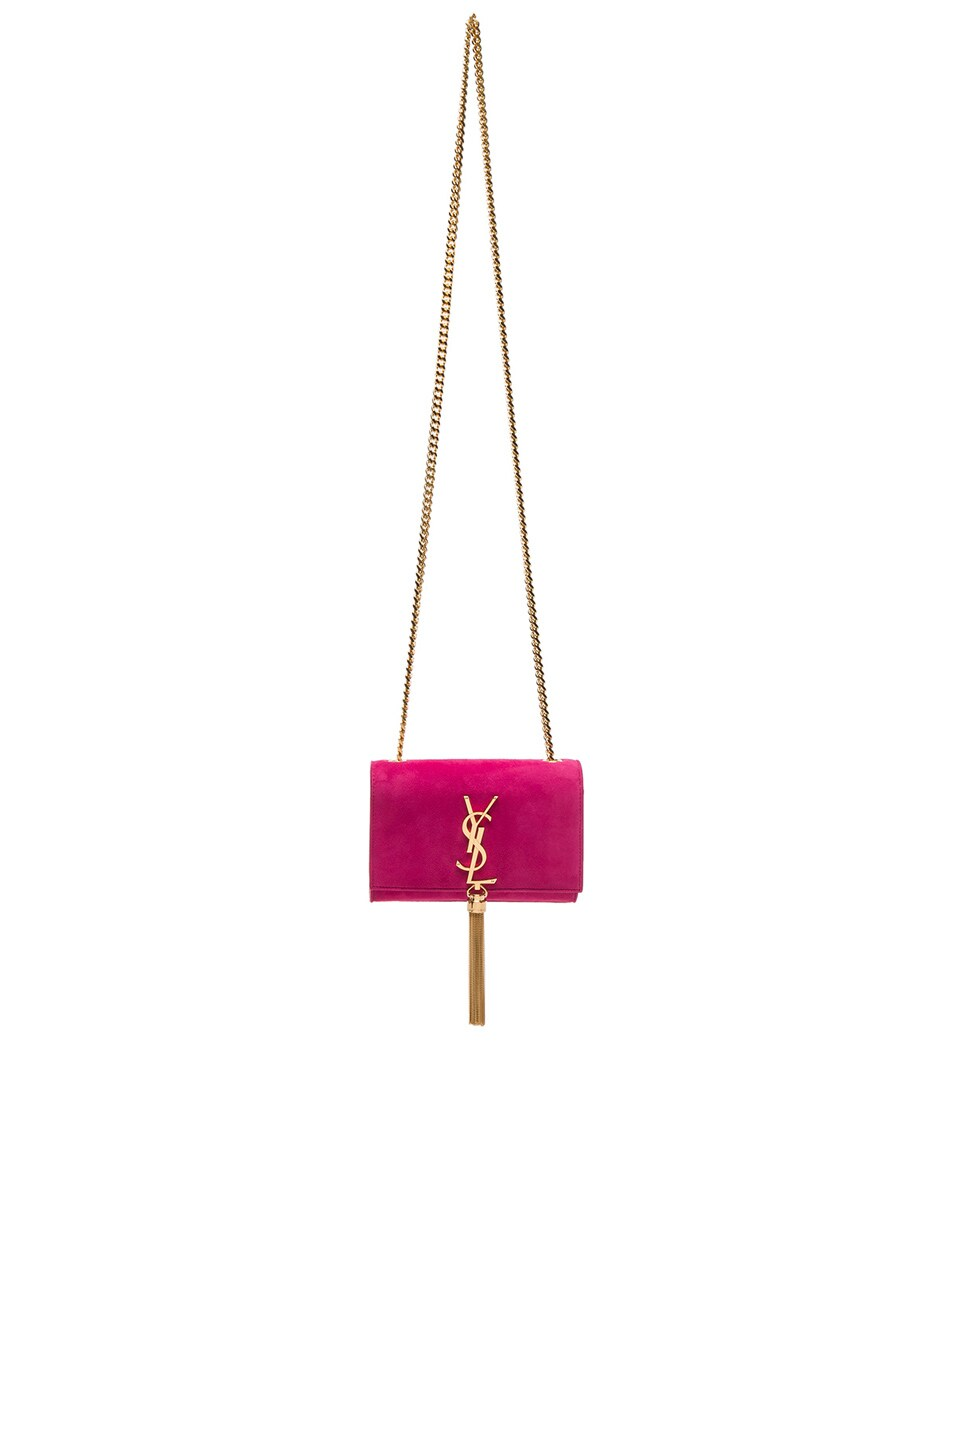 Saint Laurent Small Monogram Suede Chain Tassel Bag in Lipstick ...